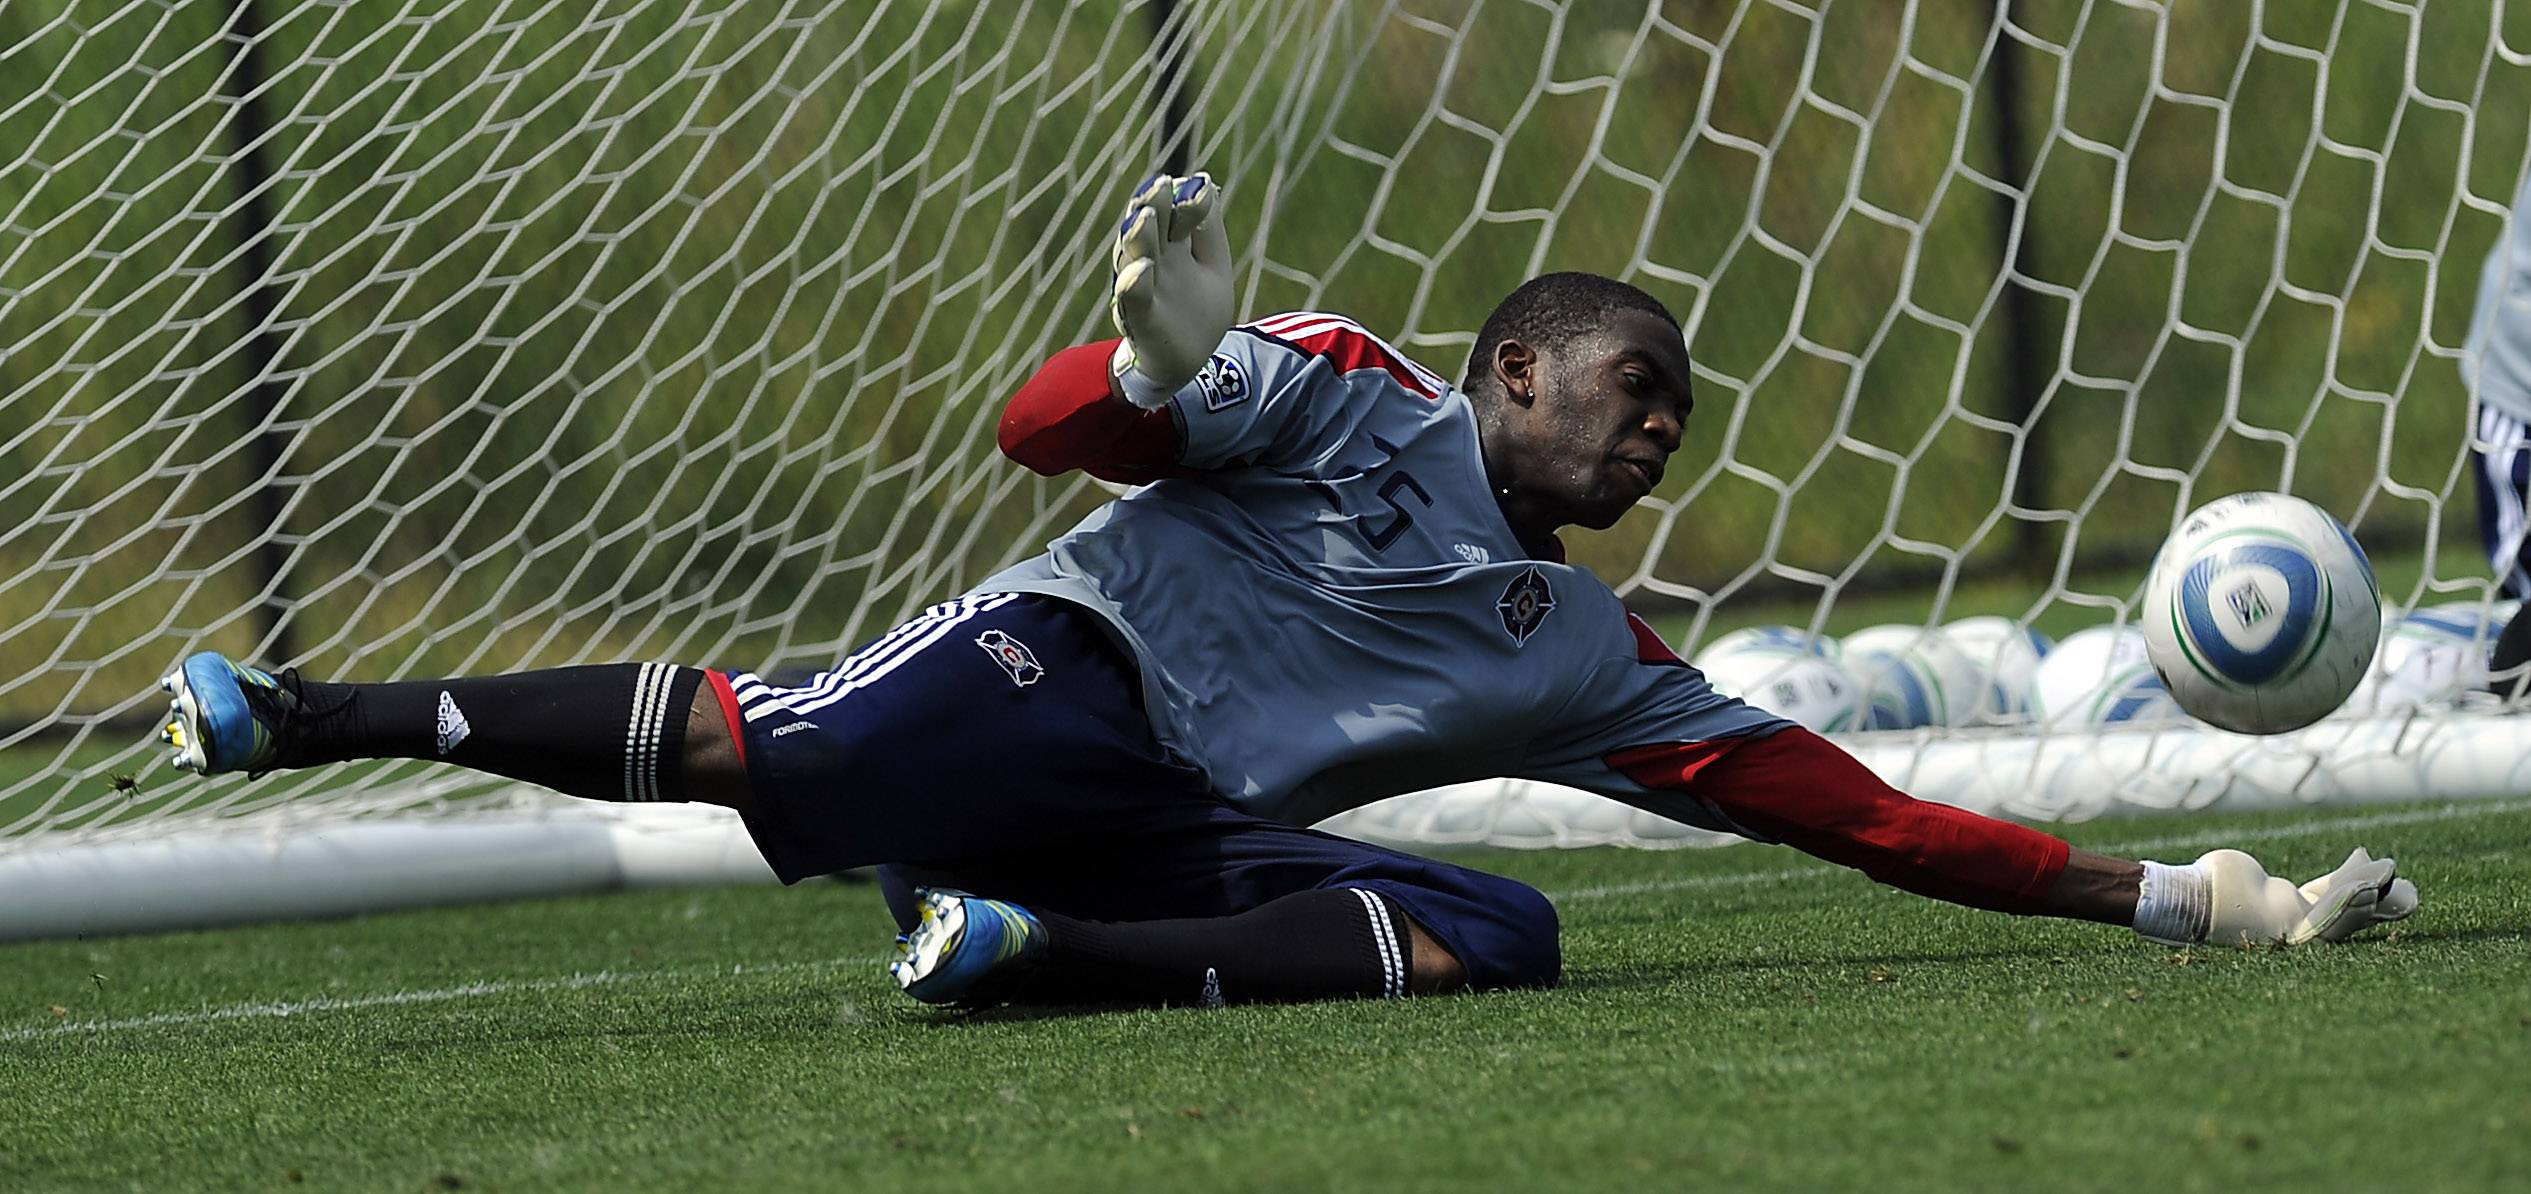 Chicago Fire goalkeeper Sean Johnson said he's frustrated that he has not played at all this season.